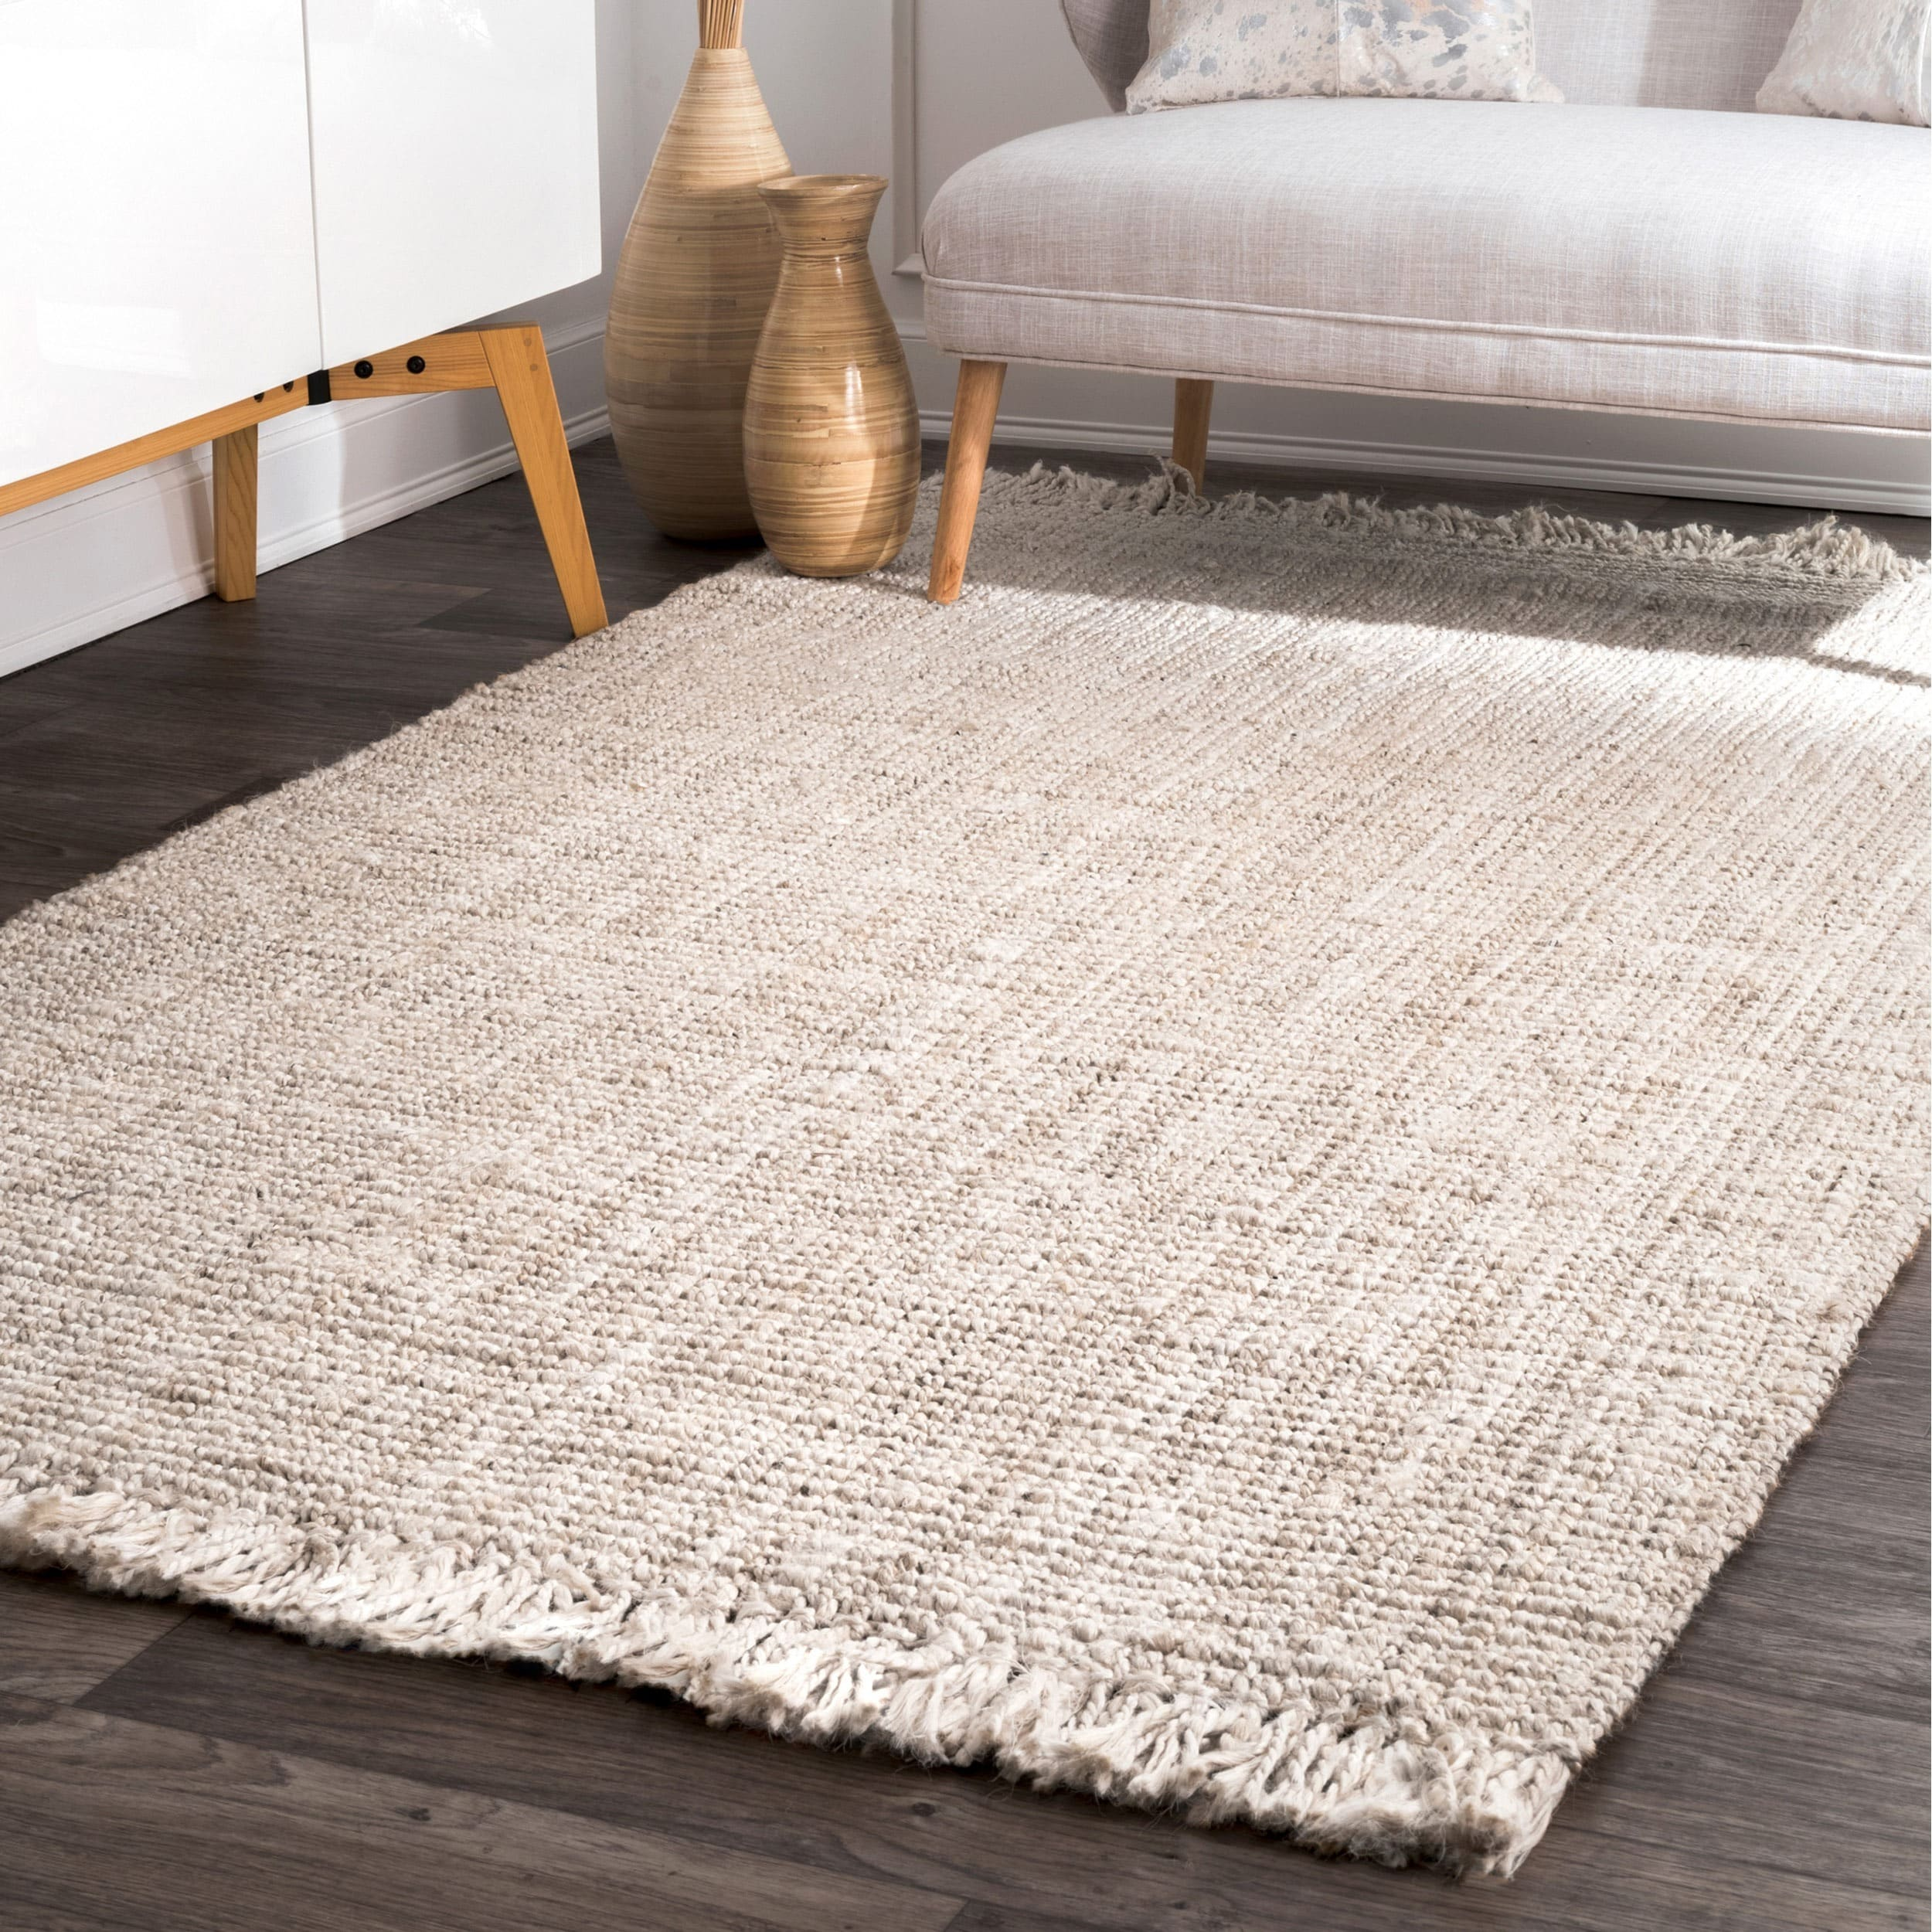 make mira x office studiolx of jute your rug remarkable area home with decor to rugs marvelous how for beautiful